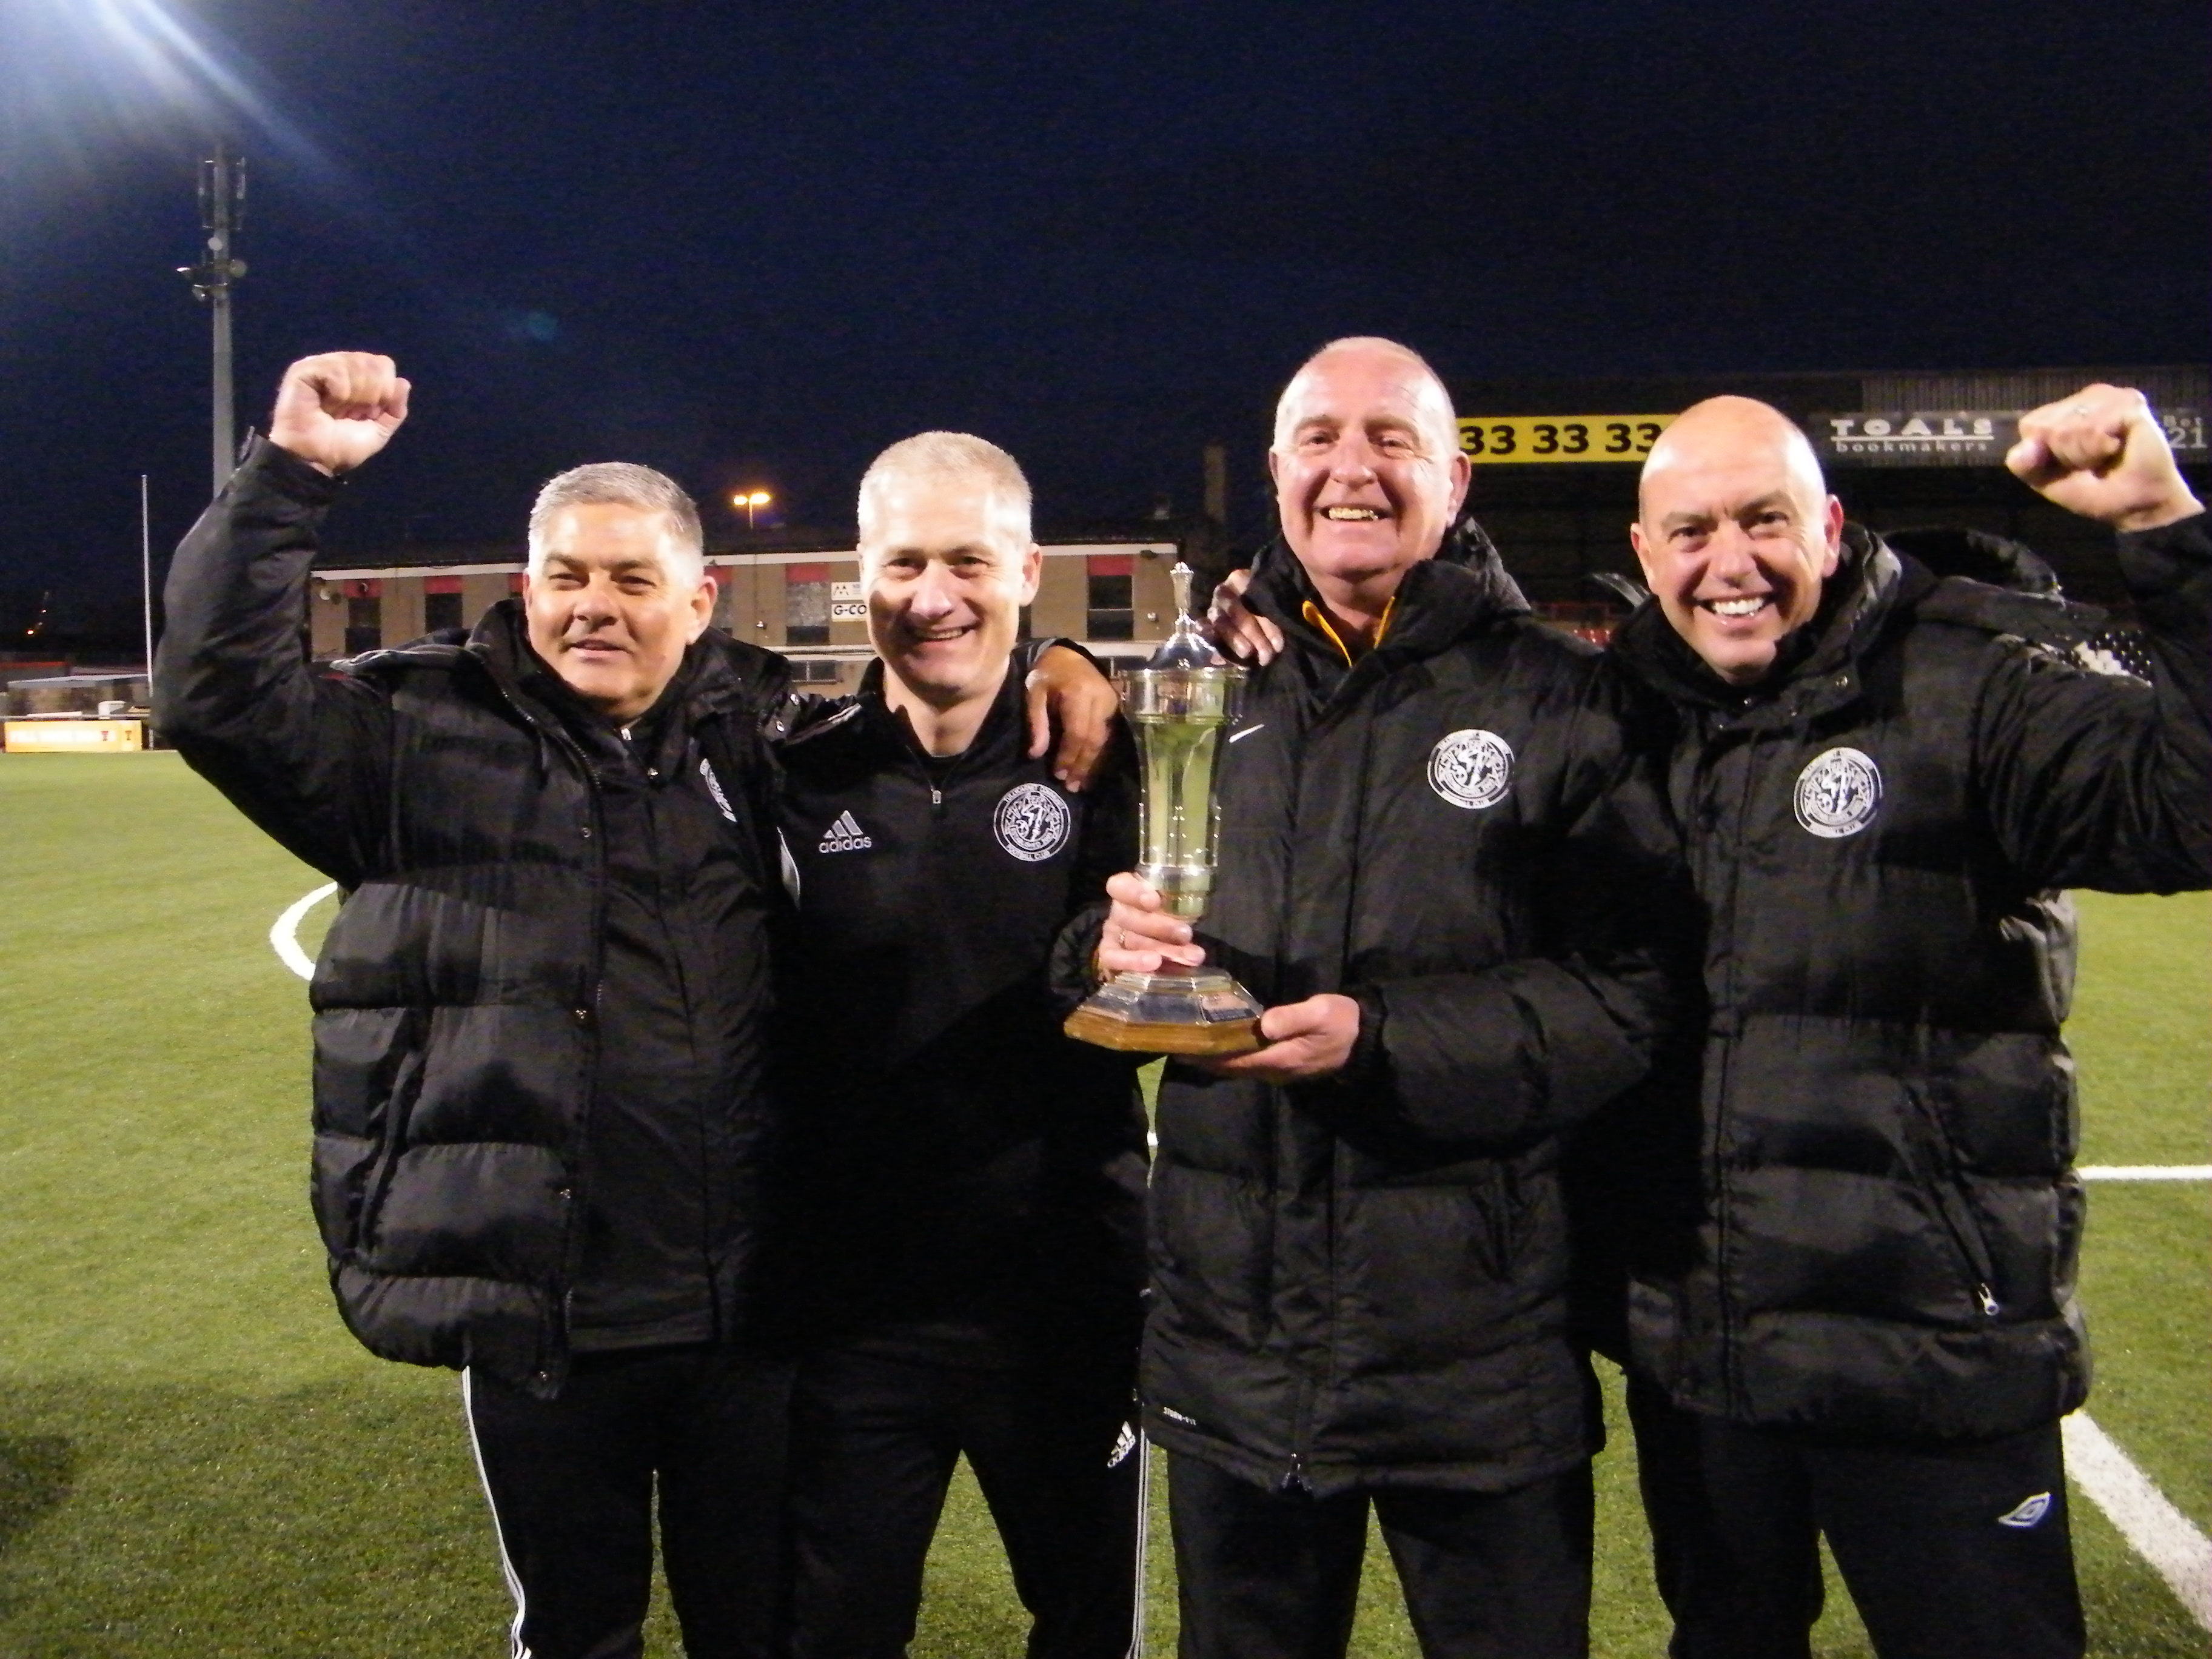 Another cup triumph this season for Tullycarnet